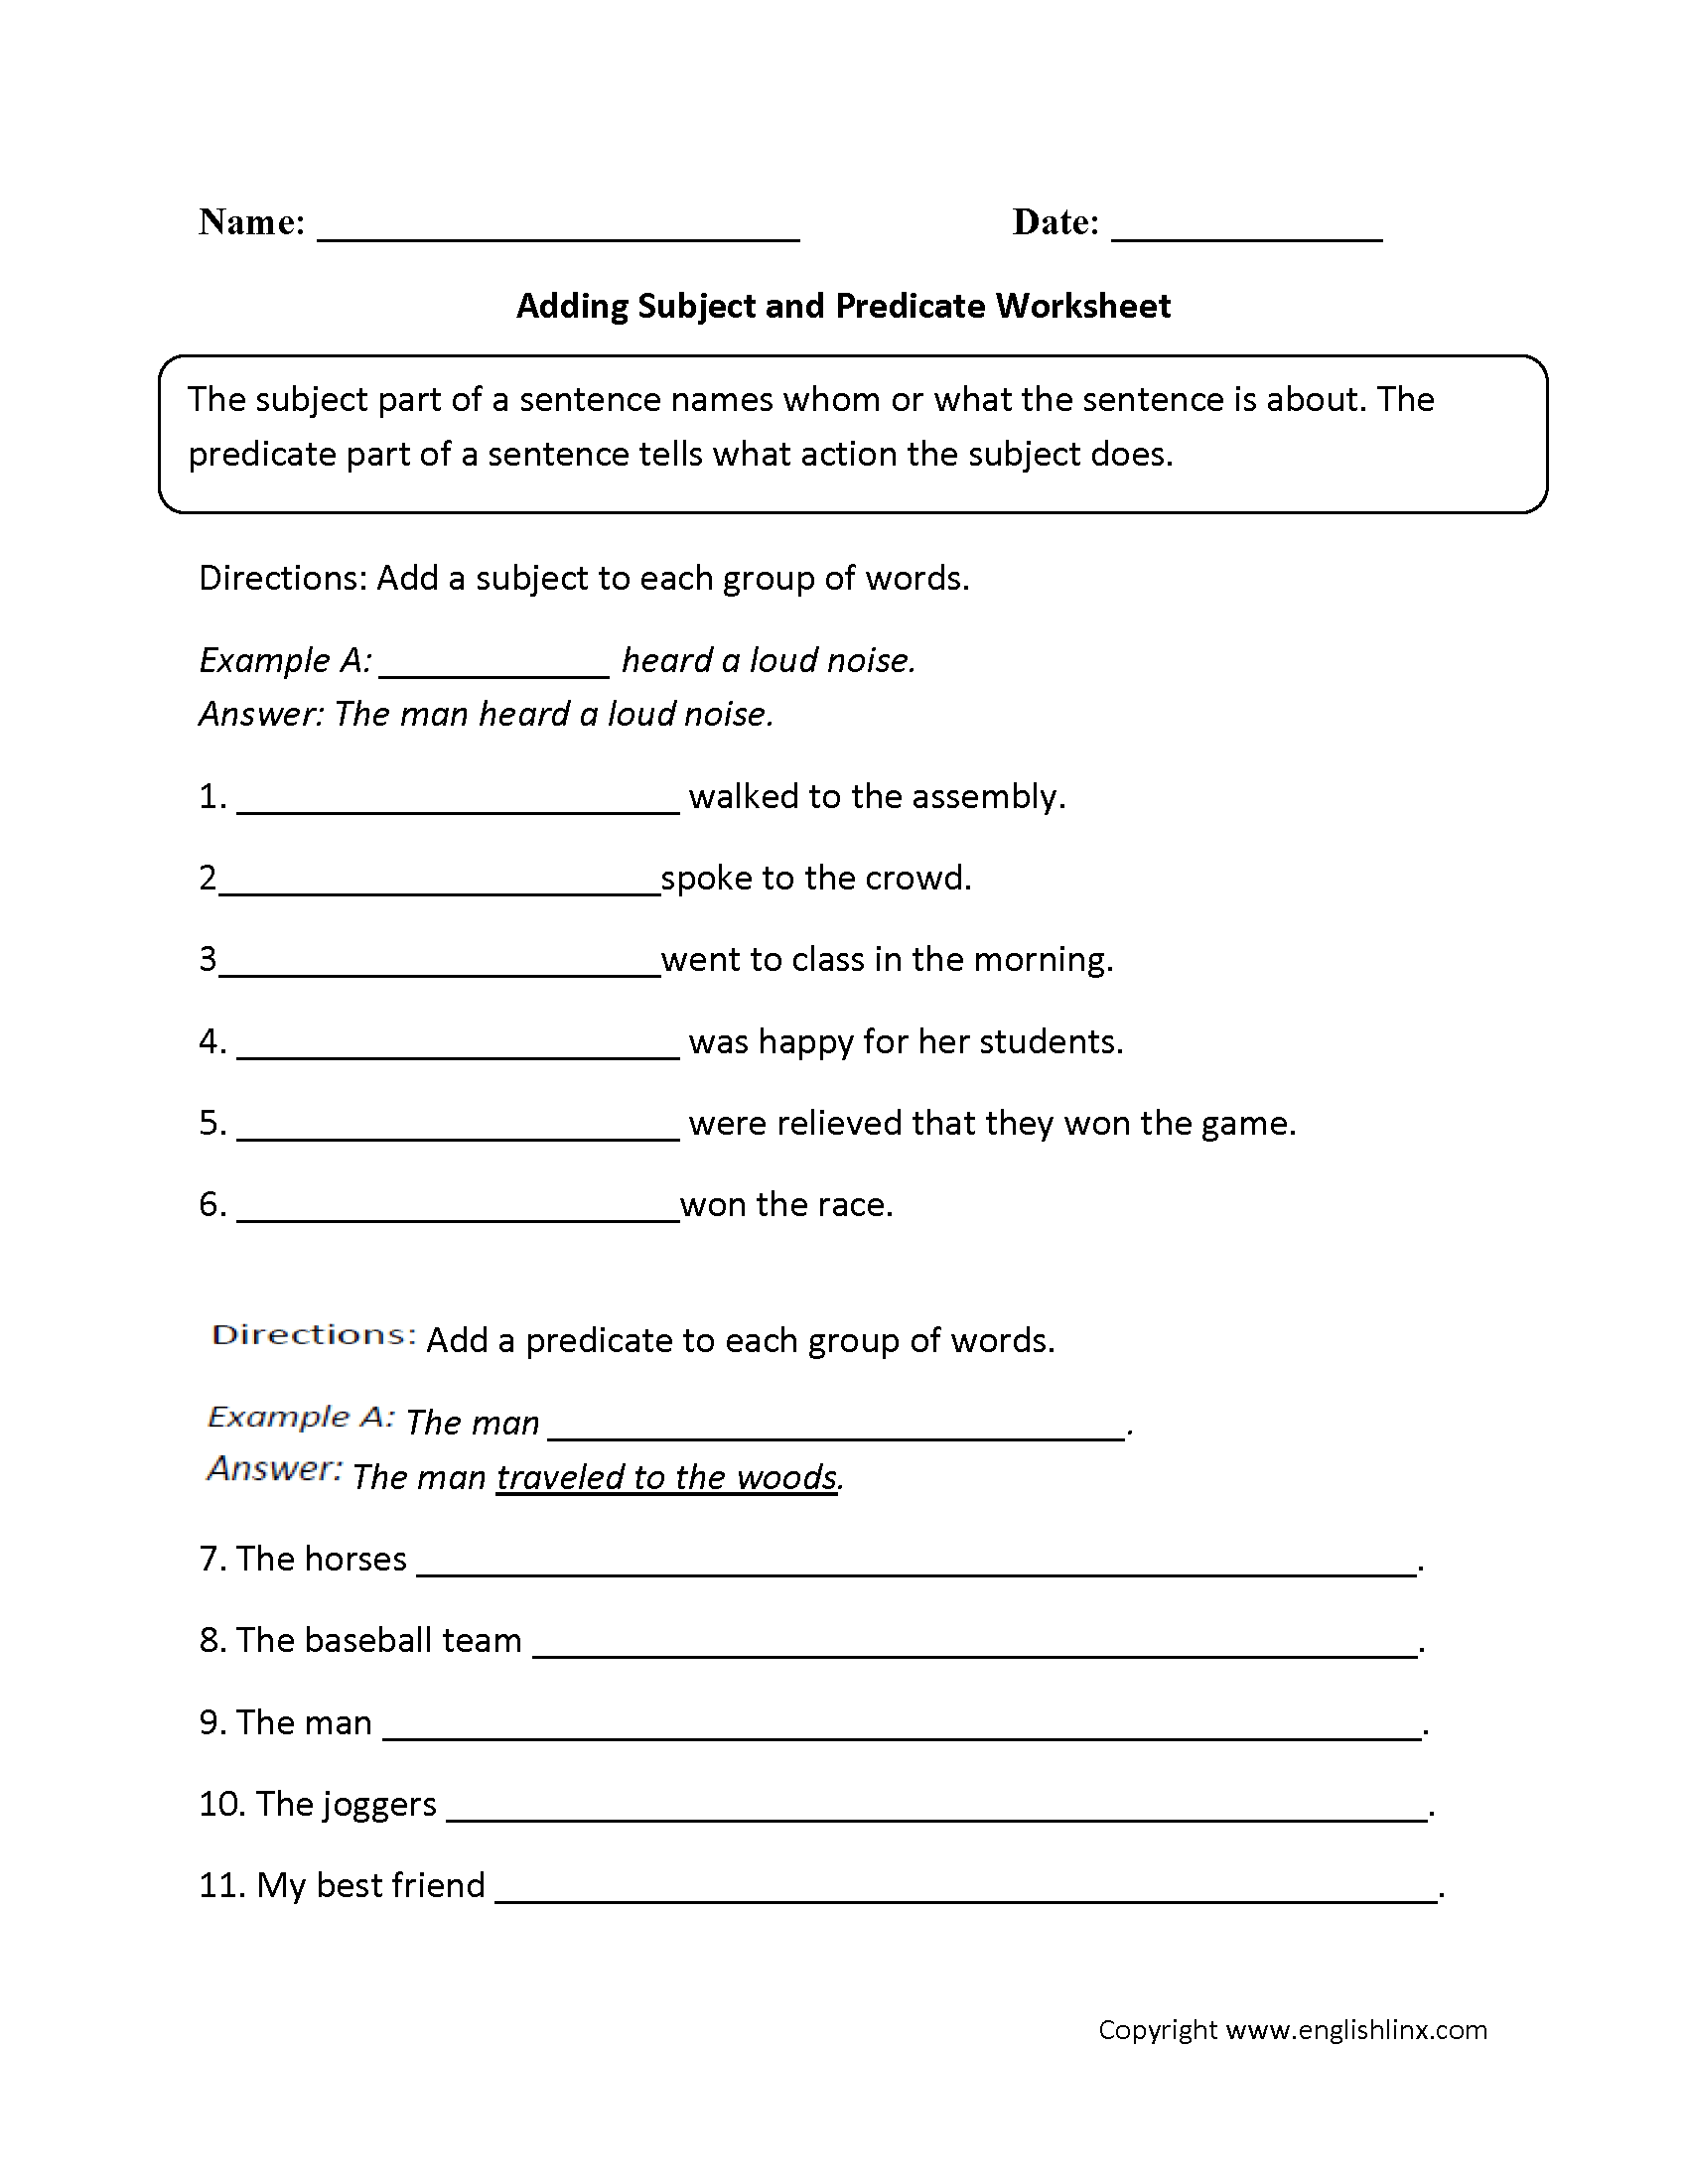 13 Best Images Of English 9th Grade Vocabulary Worksheets